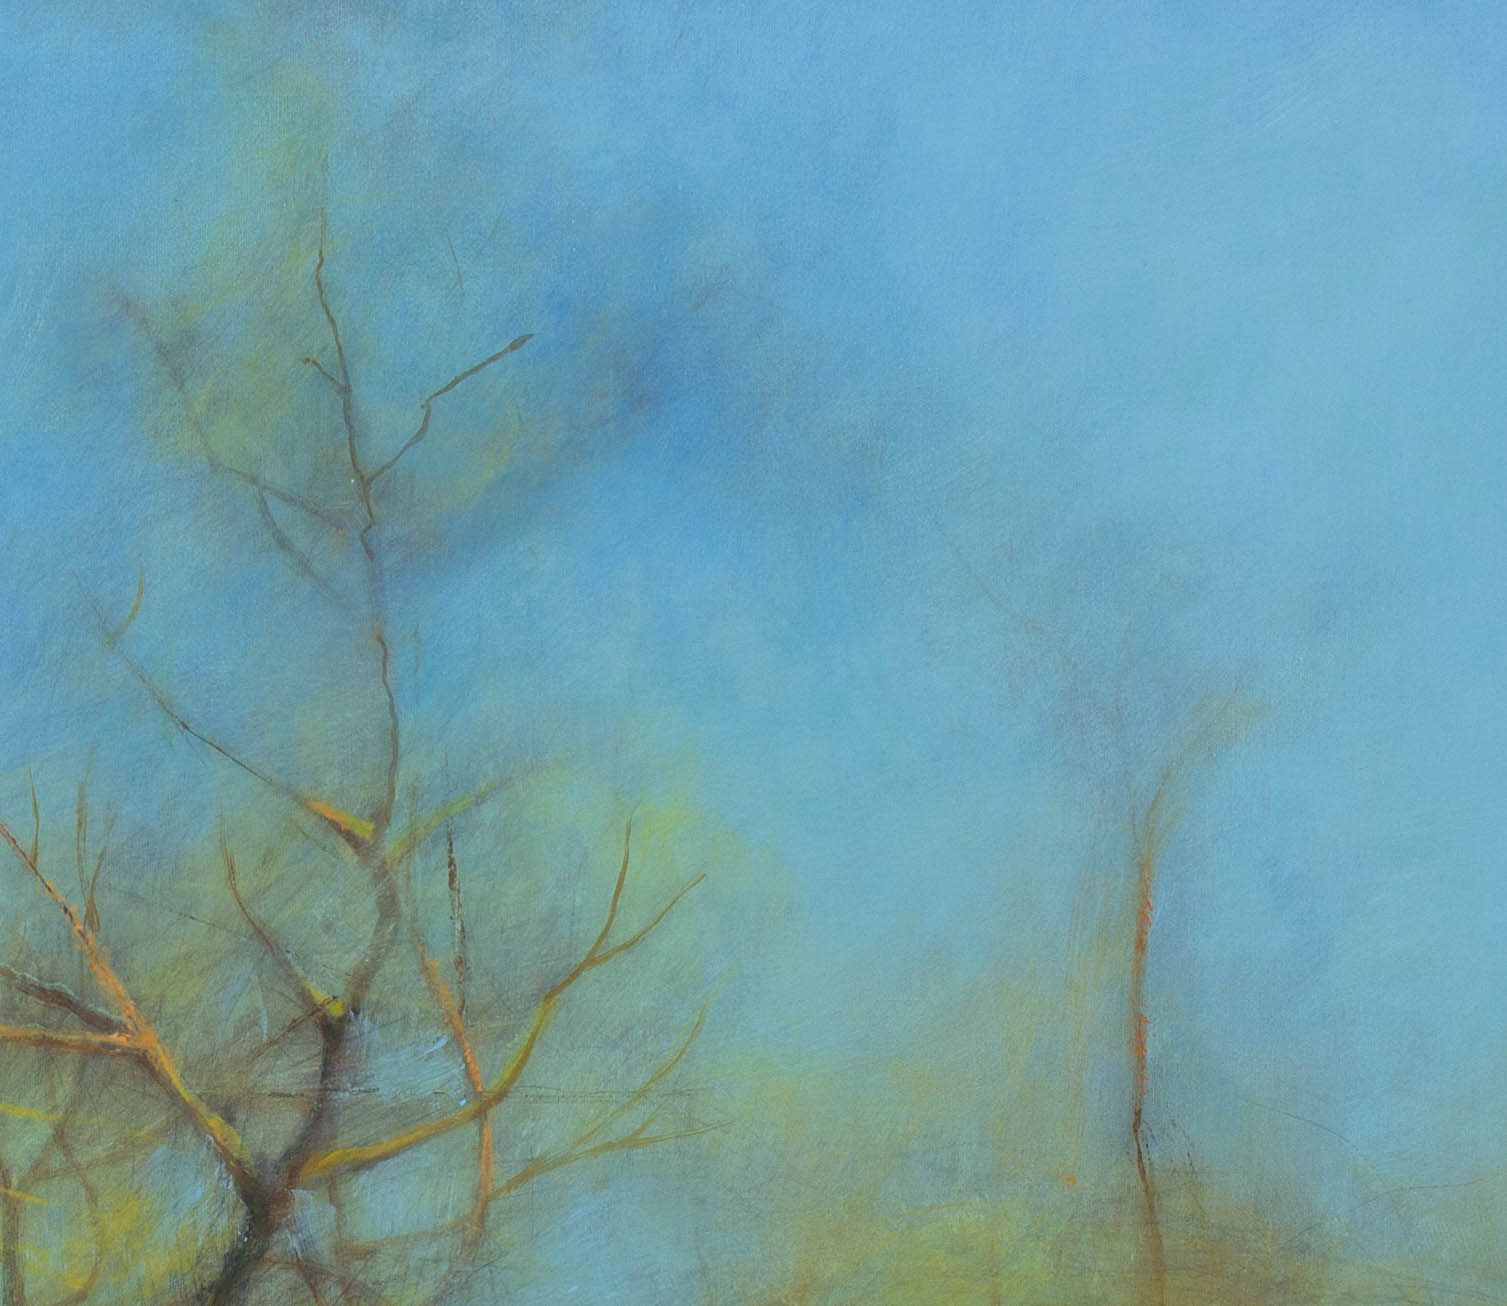 Concealed In The Blueness II